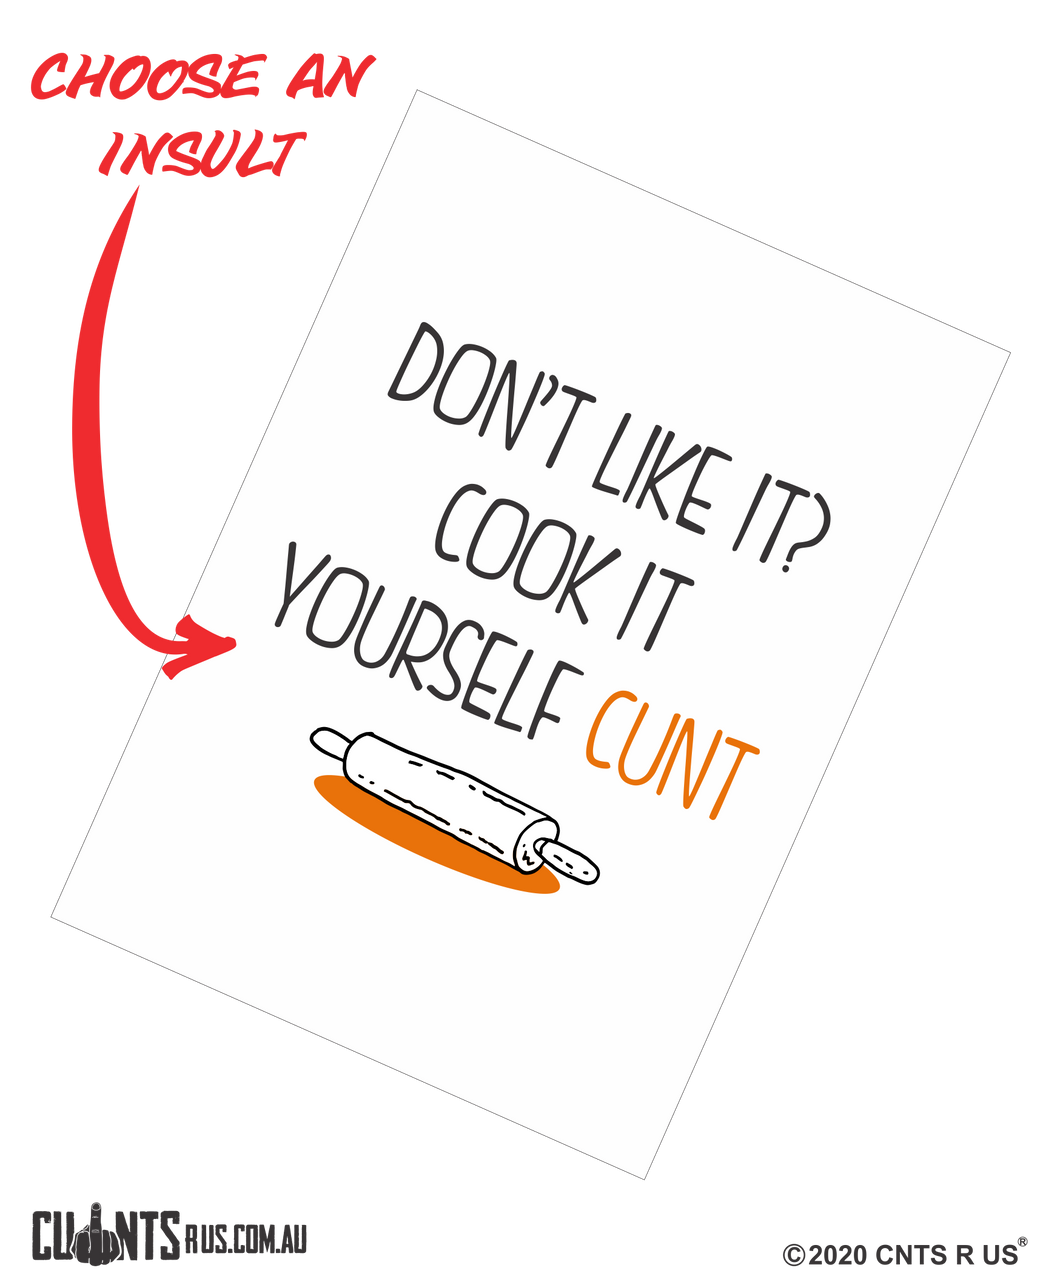 Don't Like It? Cook It Yourself Cunt Cotton Teatowel CRU03-03-14003